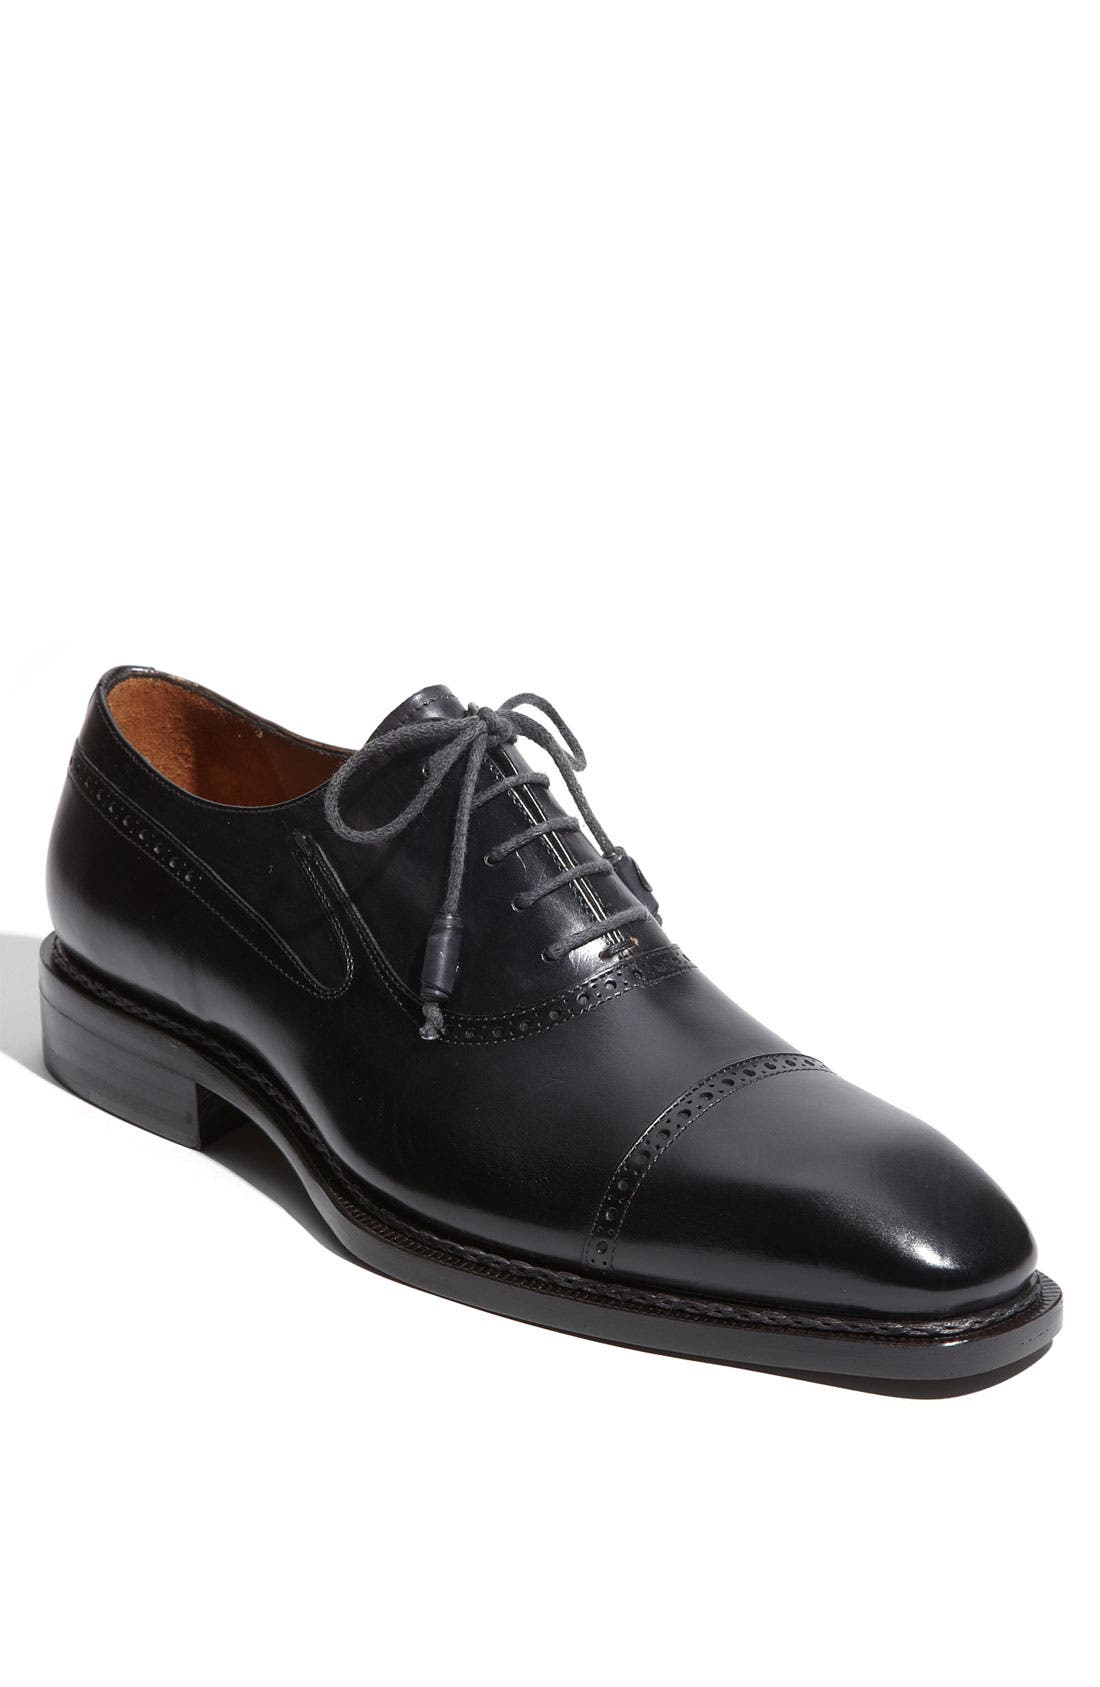 Main Image - Mezlan 'Santo' Oxford